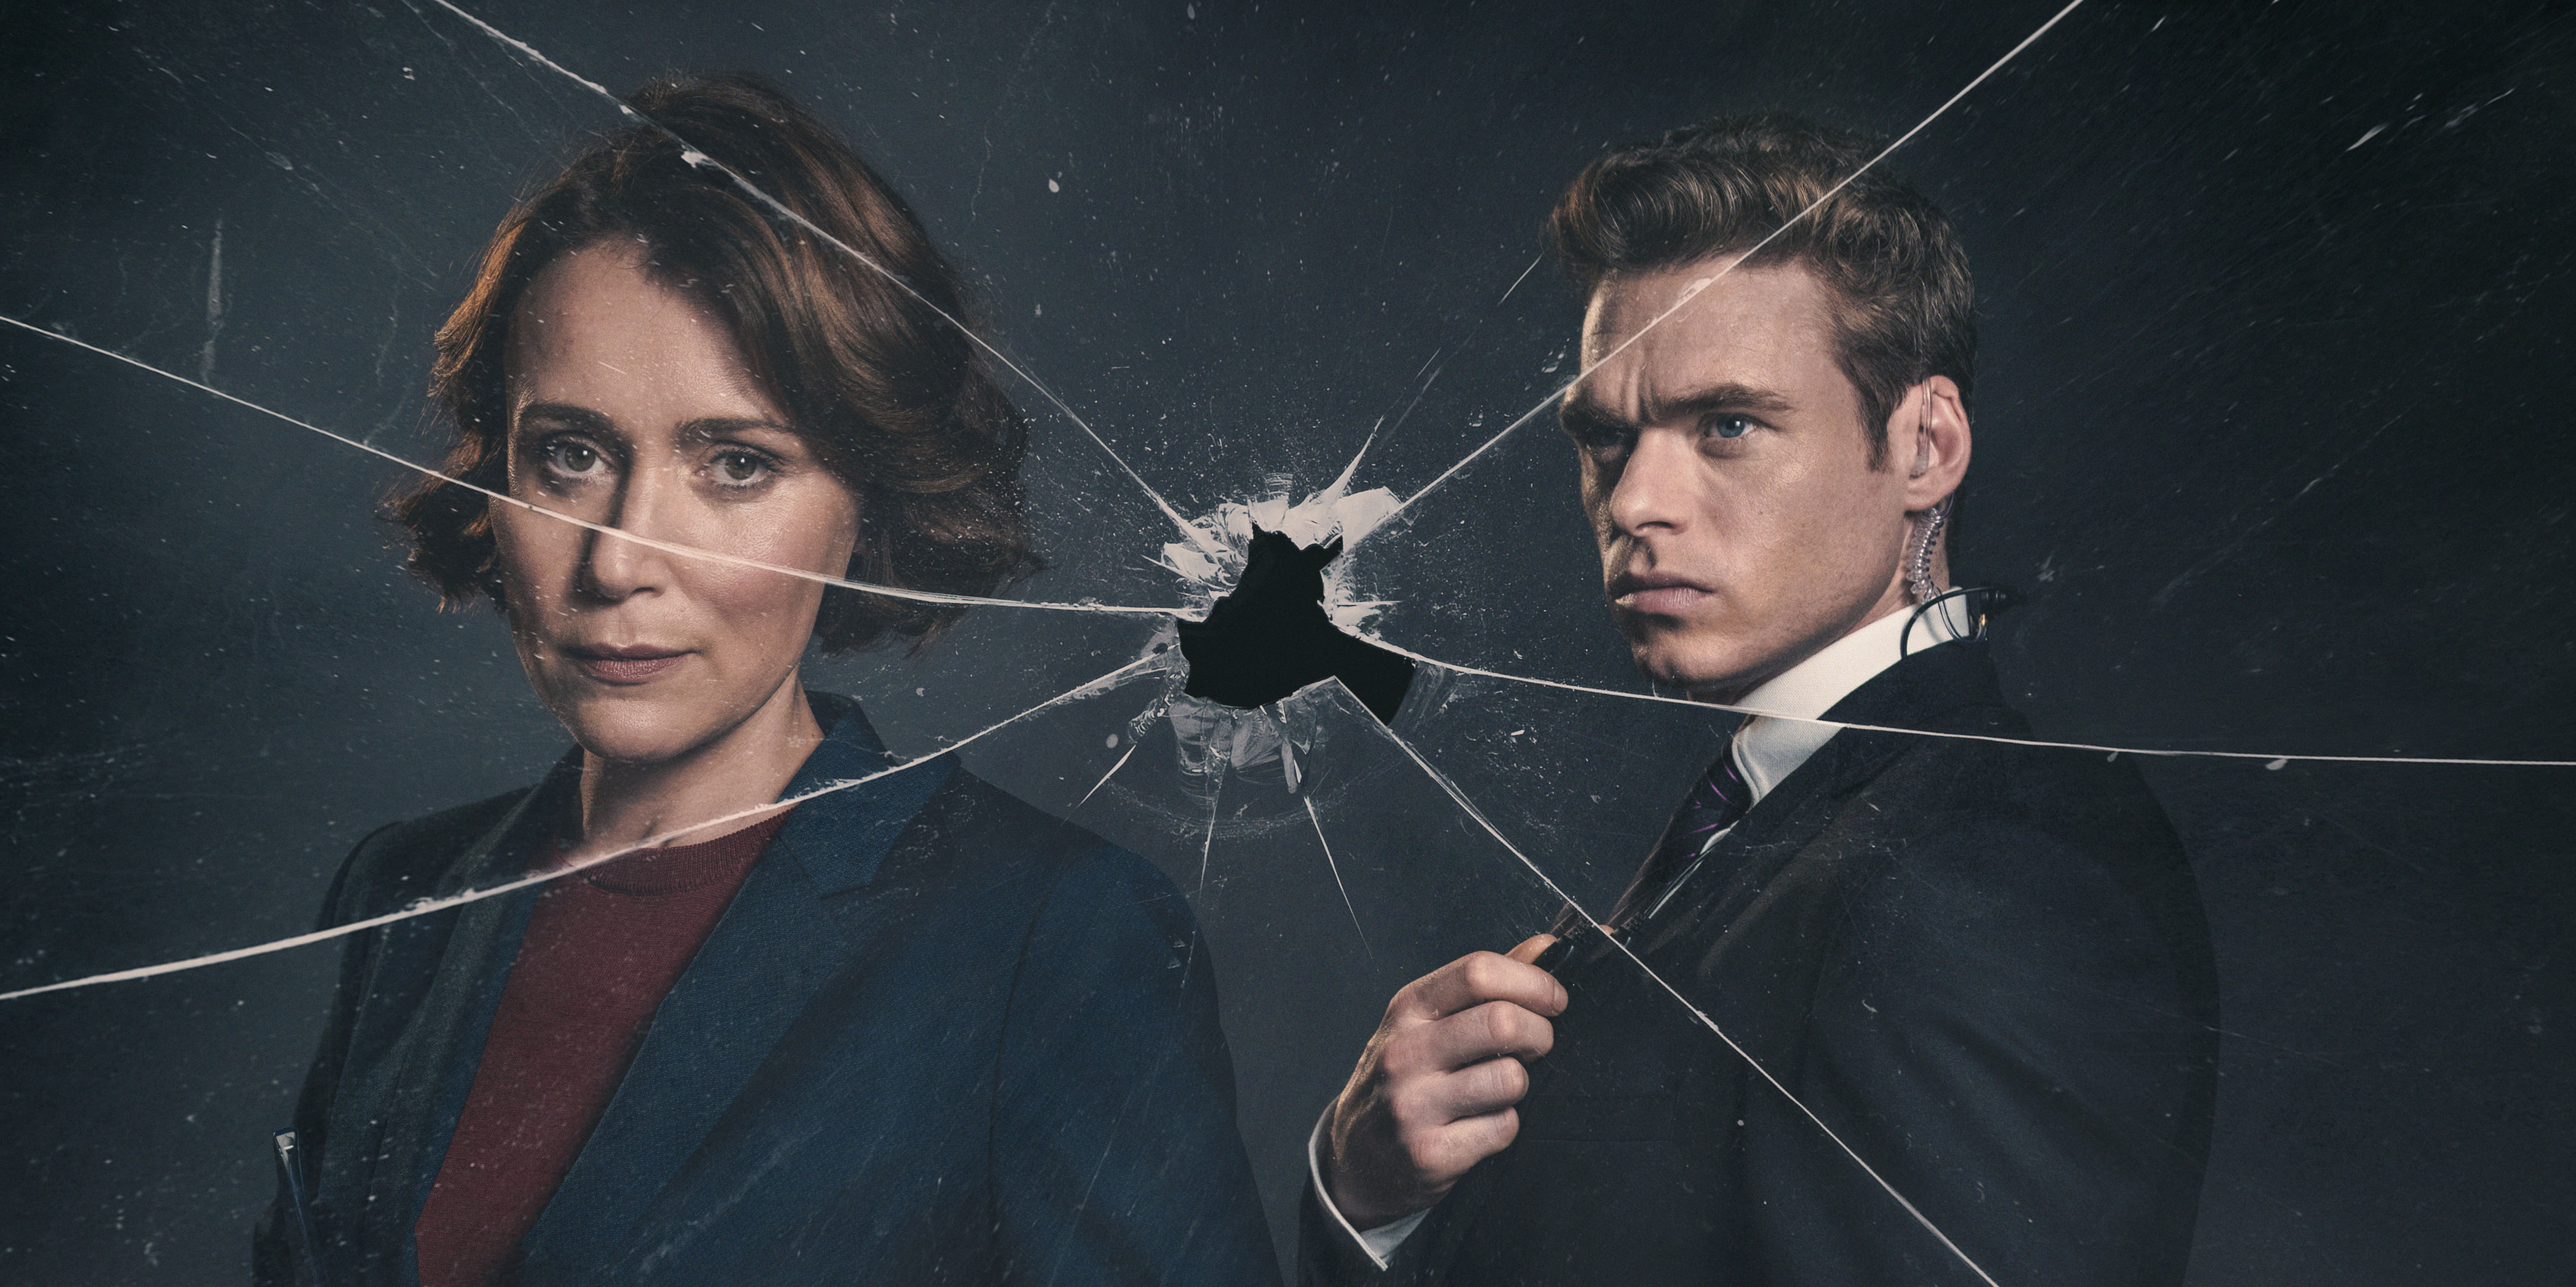 bodyguard-coming-soon-to-bbc-one.jpg